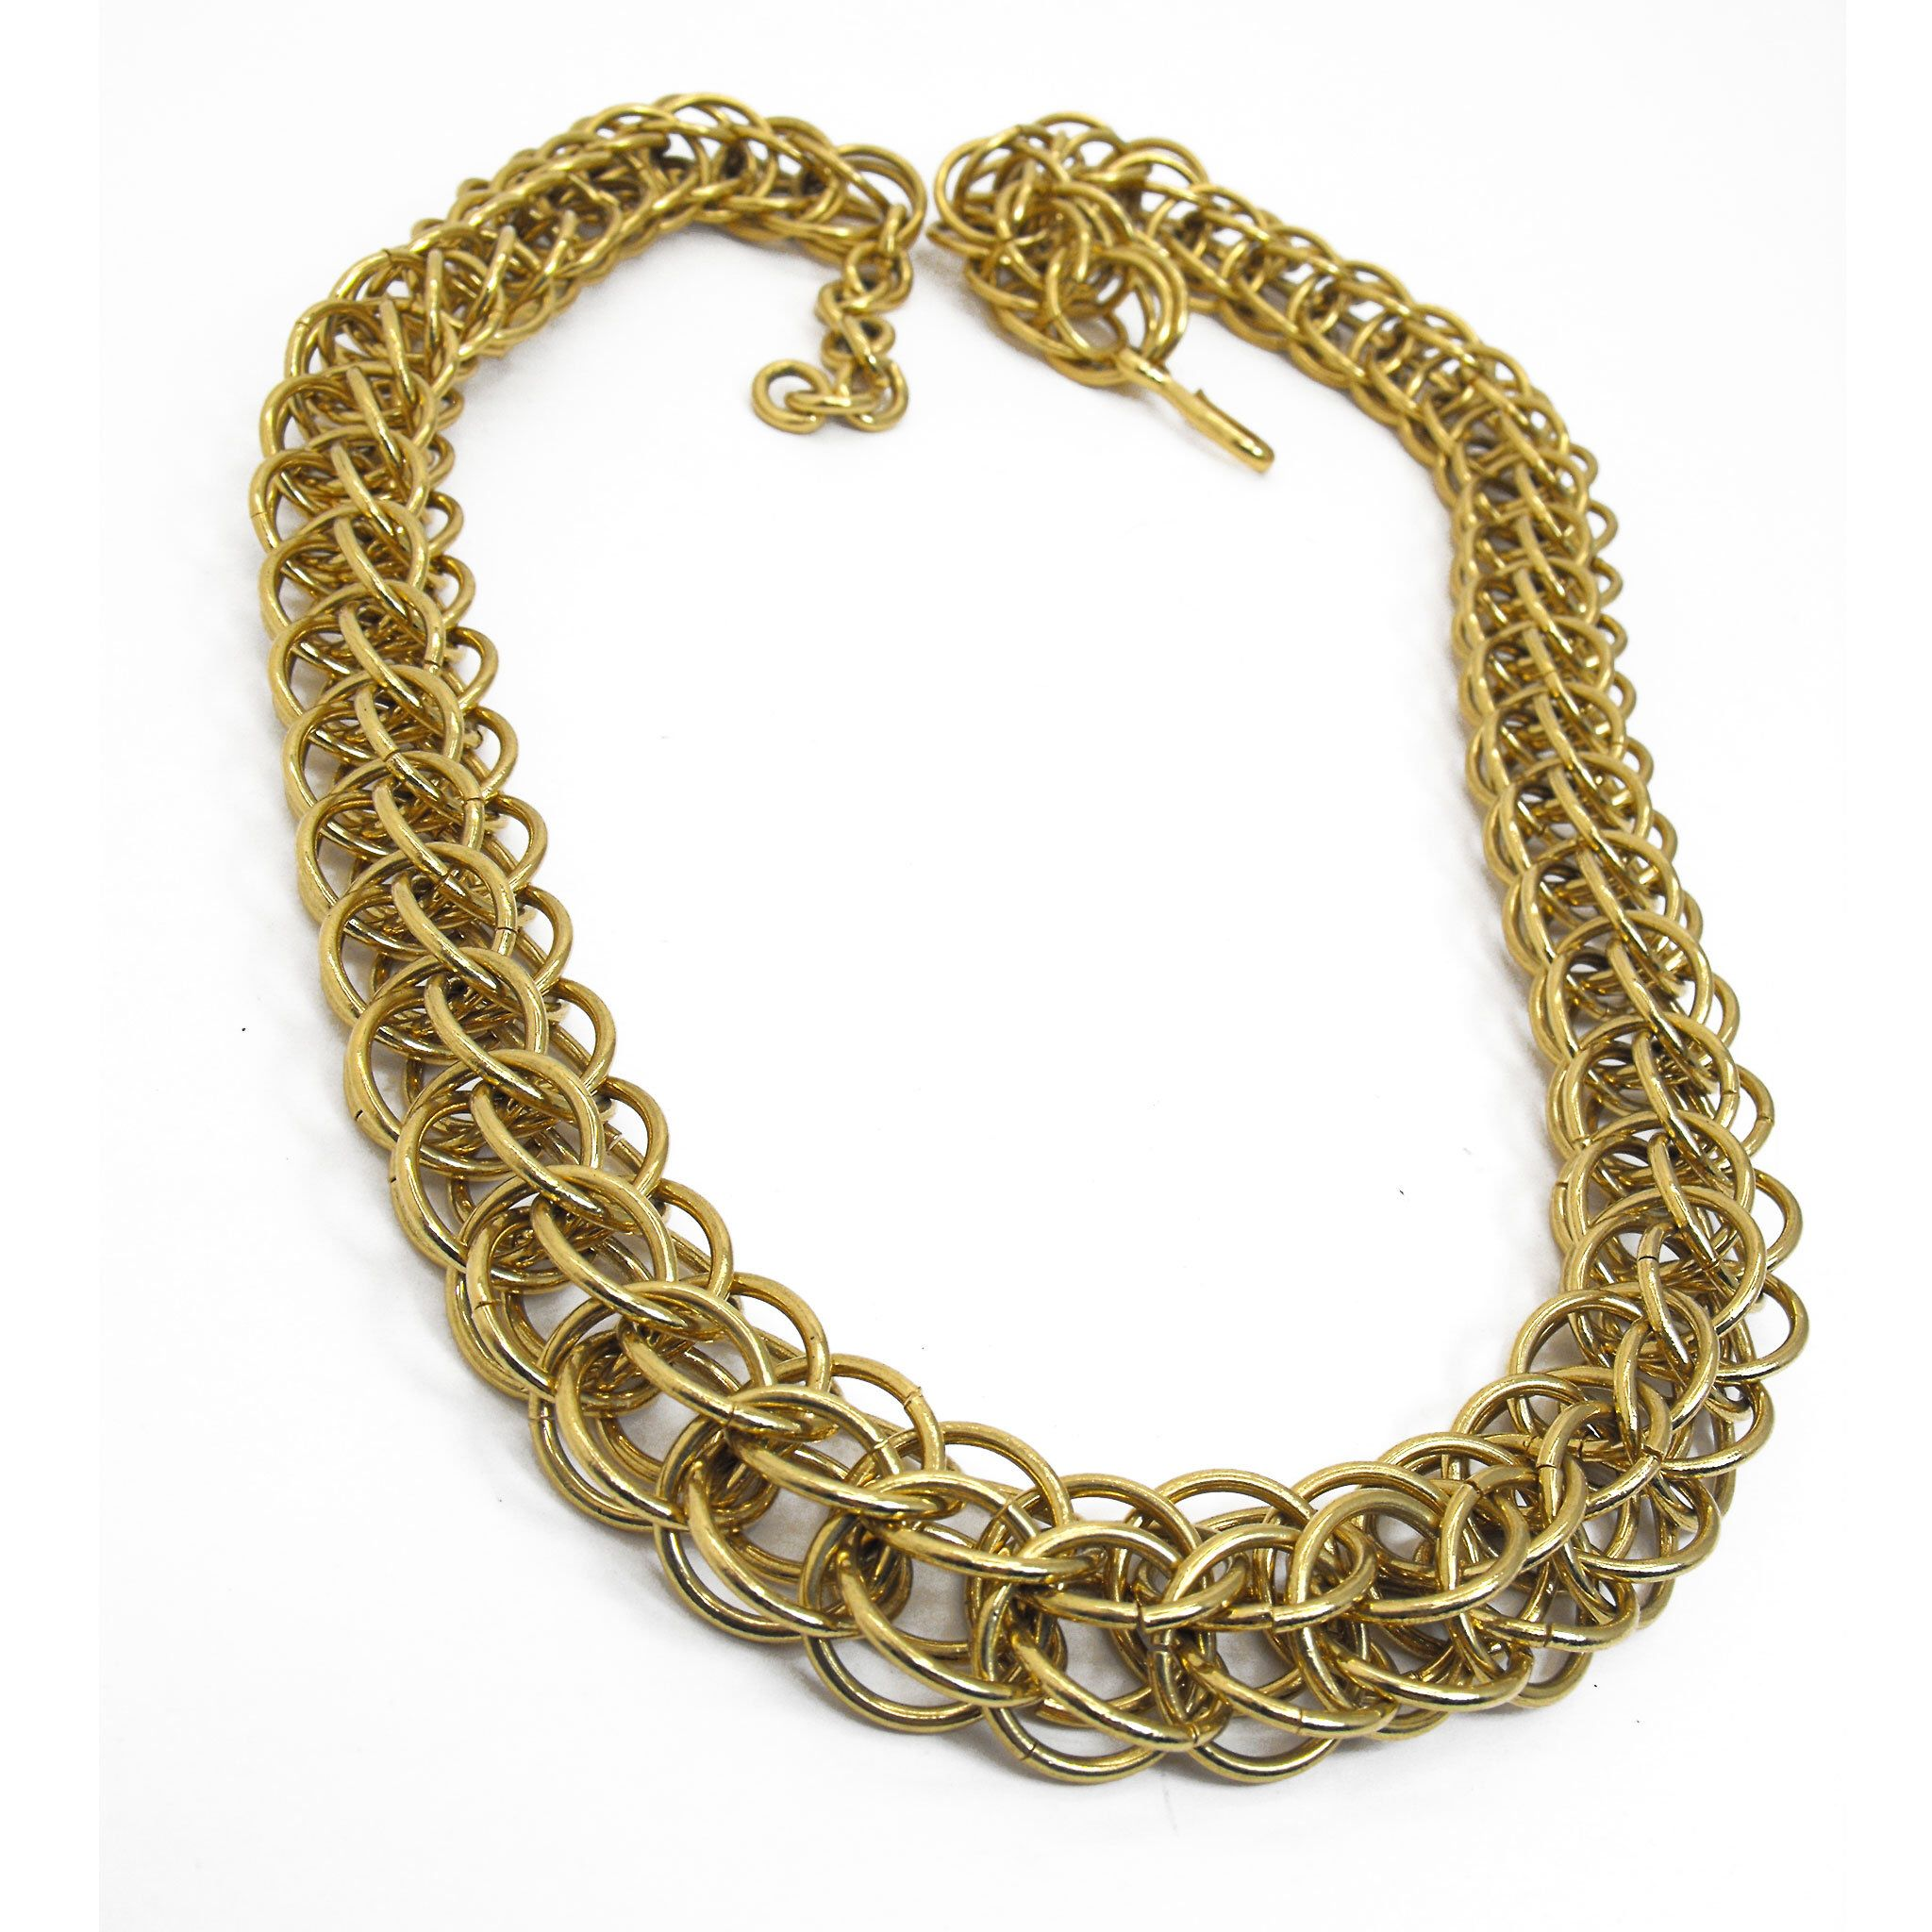 Vintage Signed Monet Chunky Gold Tone Fancy Rope Link Chain Necklace 80s